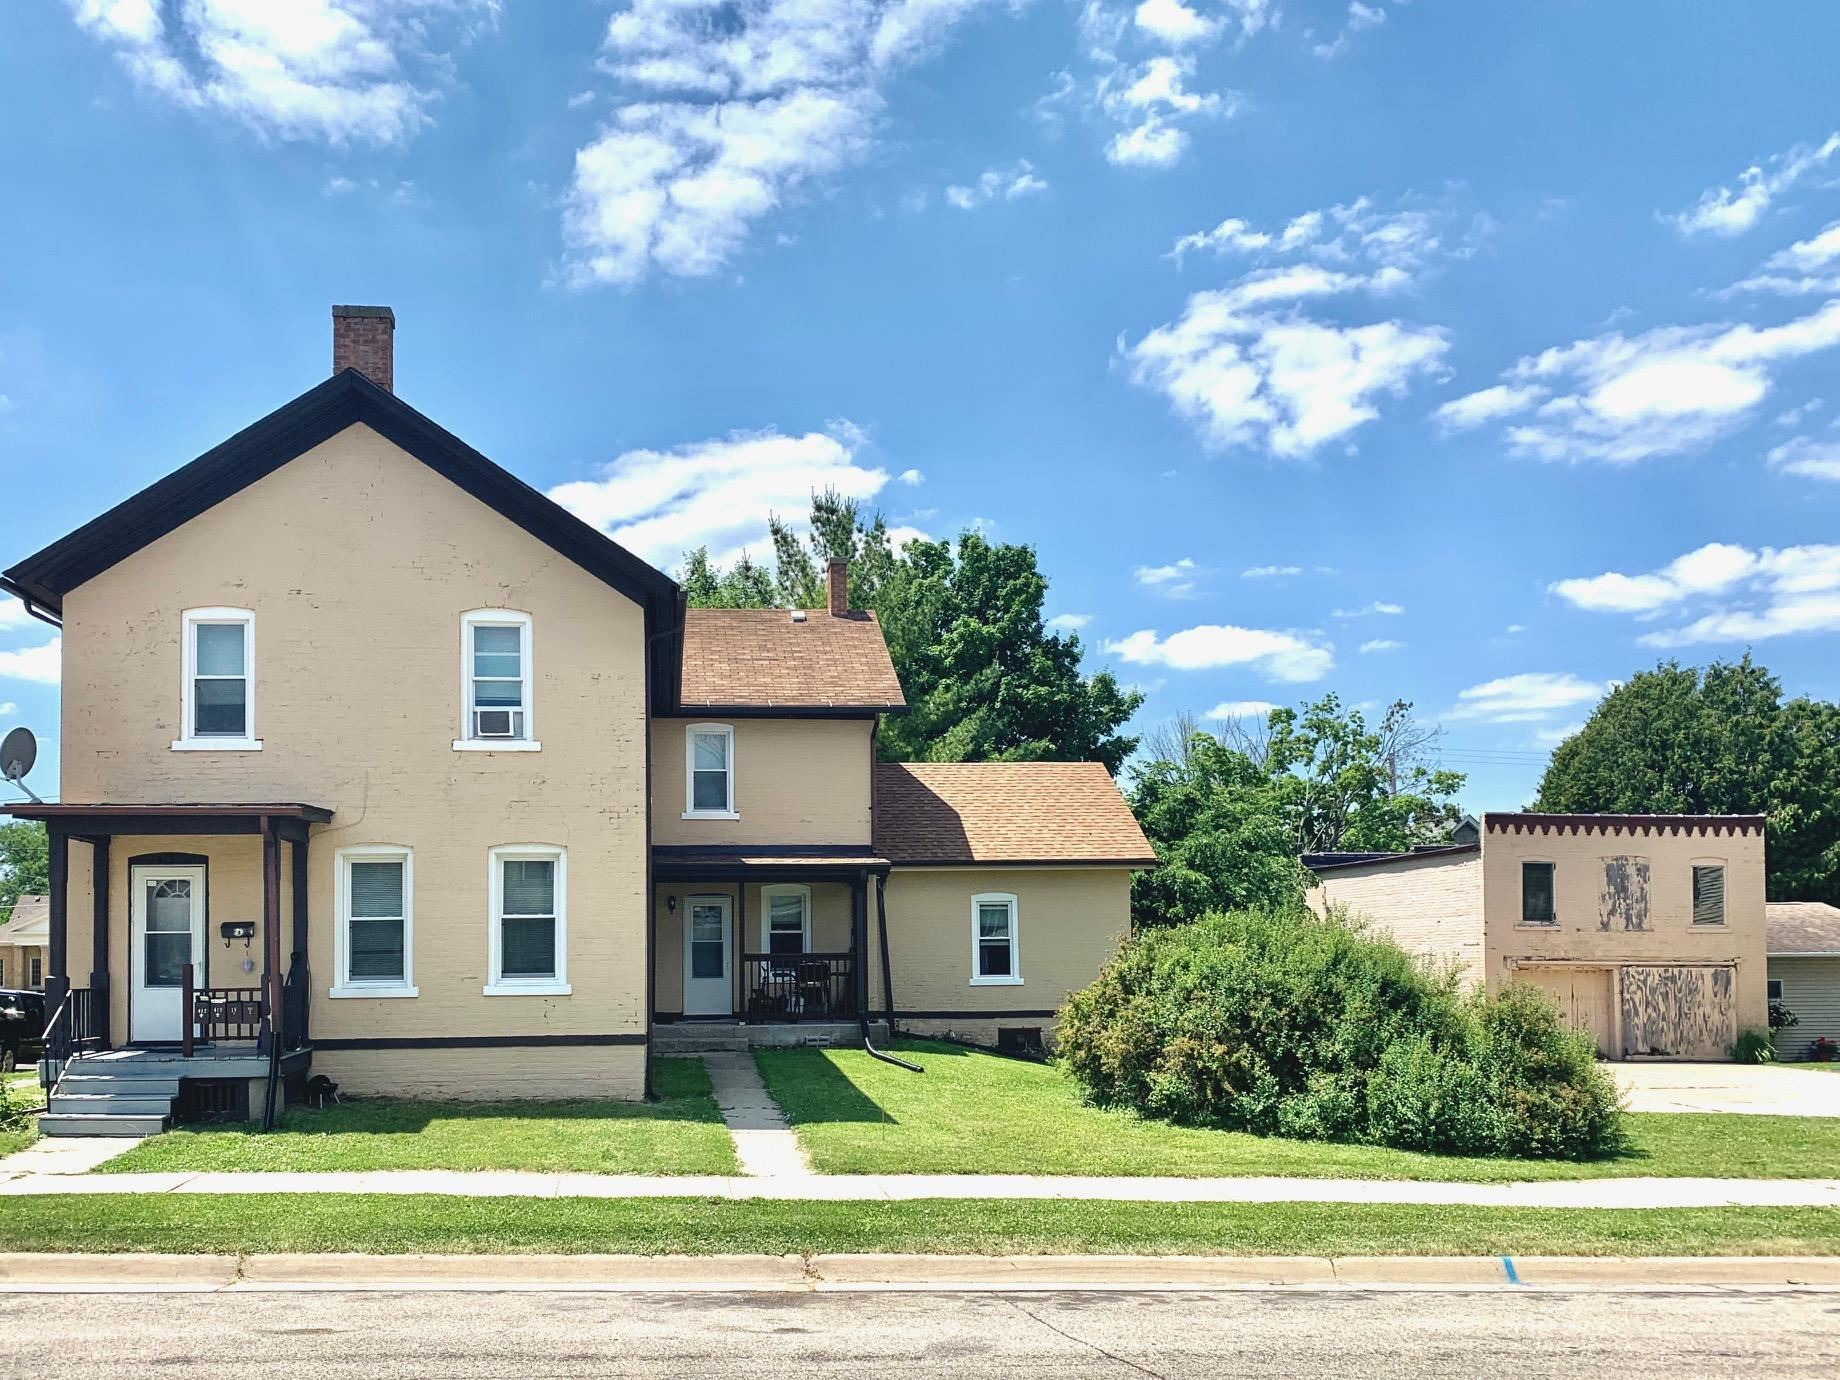 410 S Sixth St, Watertown, WI 53094 - #: 1698418